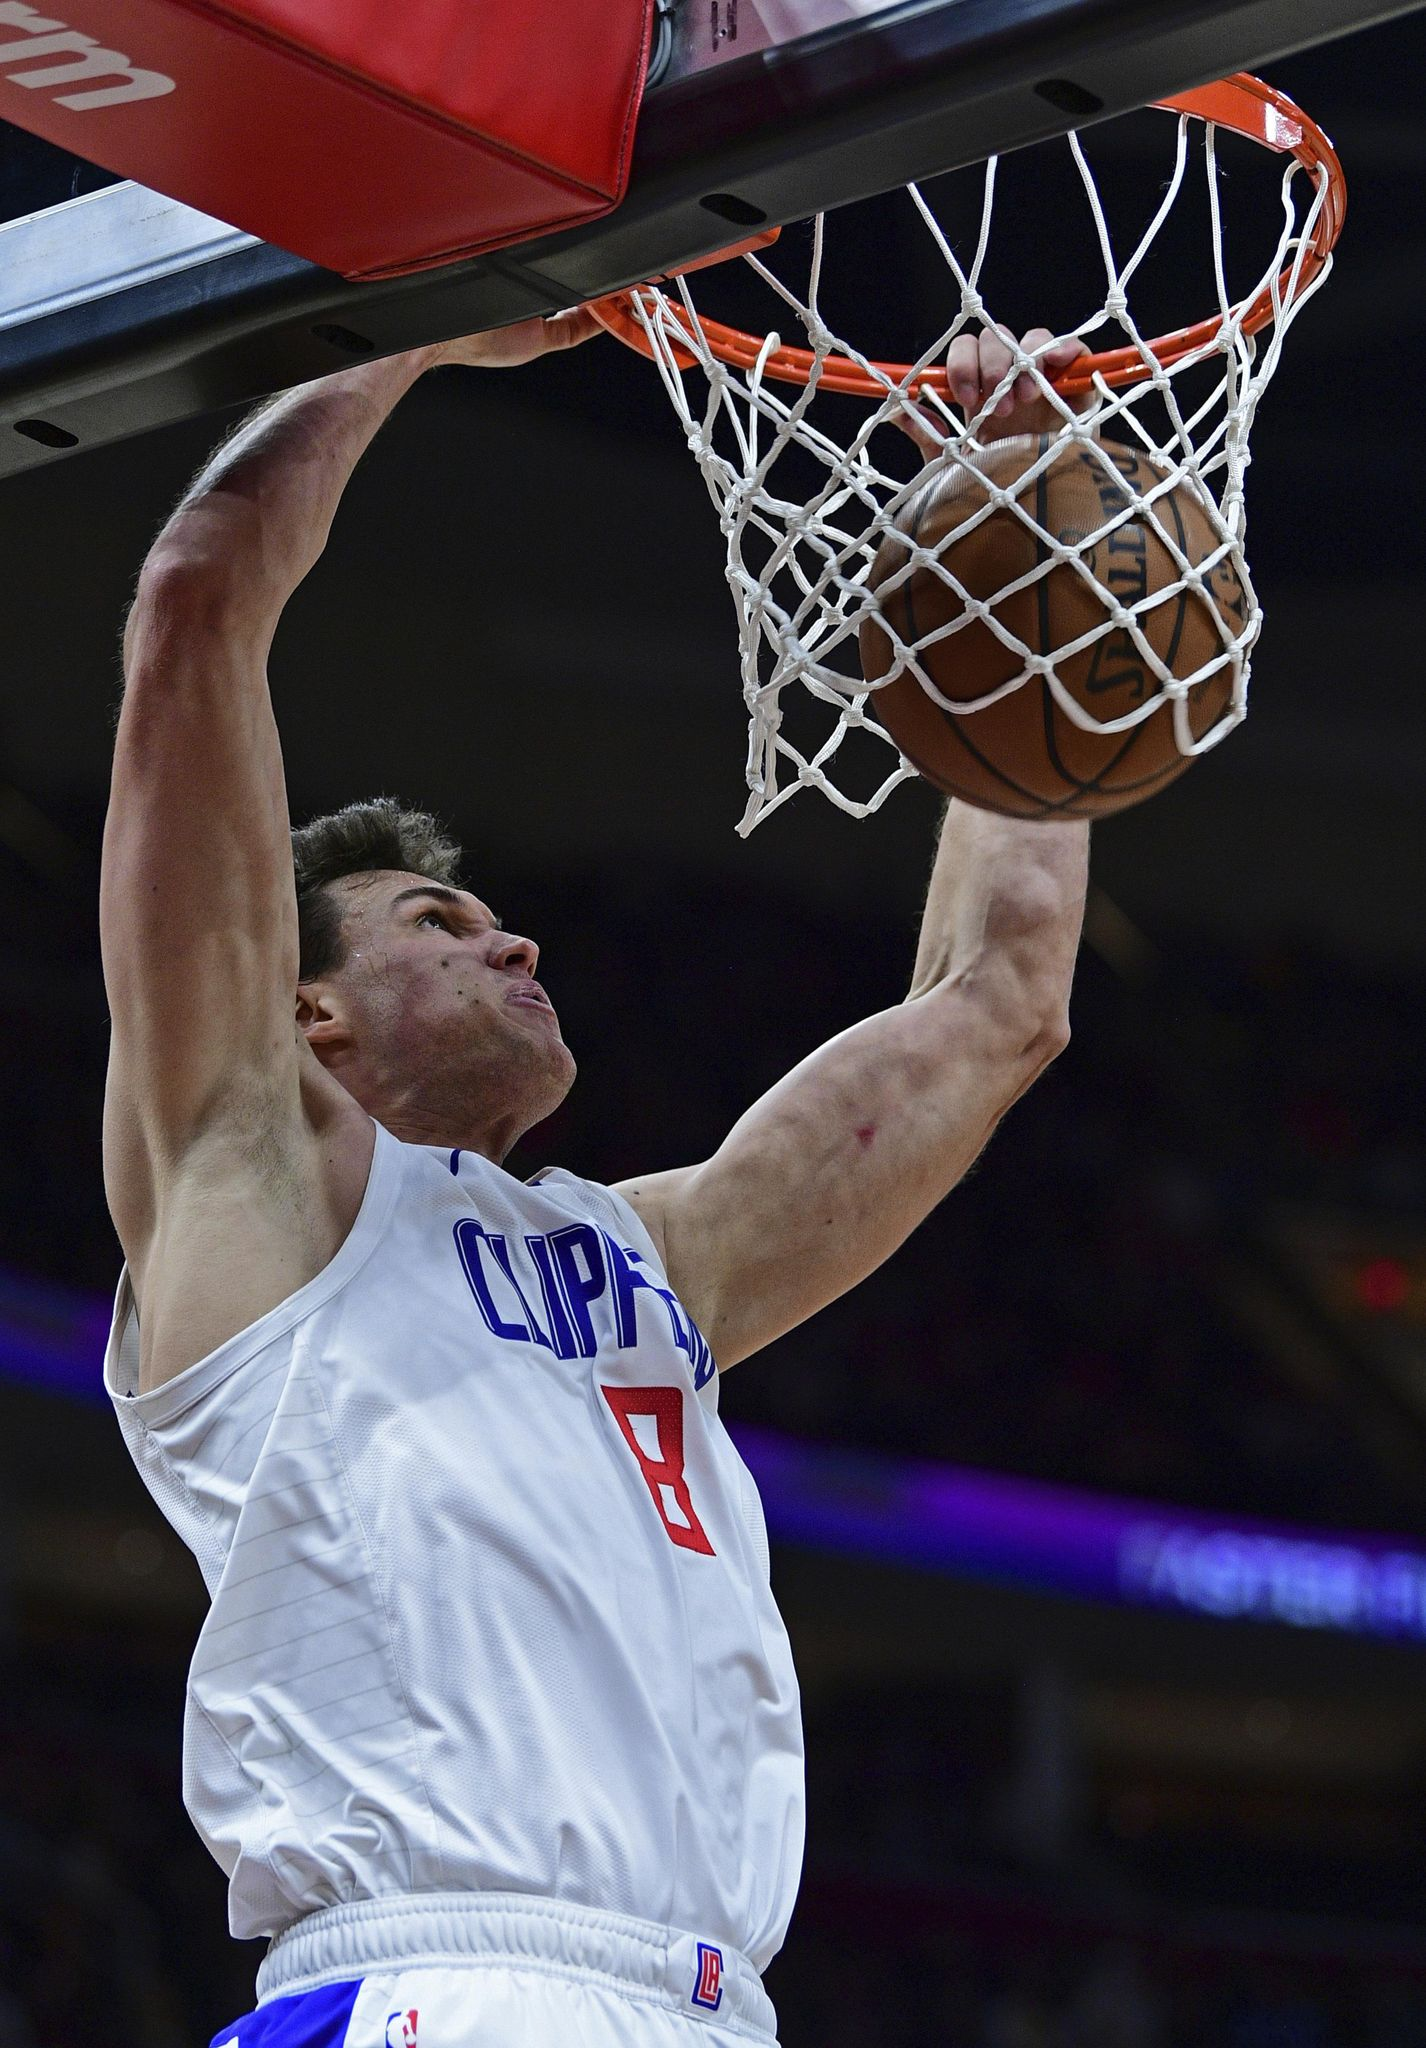 Clippers_cavaliers_basketball_87989_s1426x2048